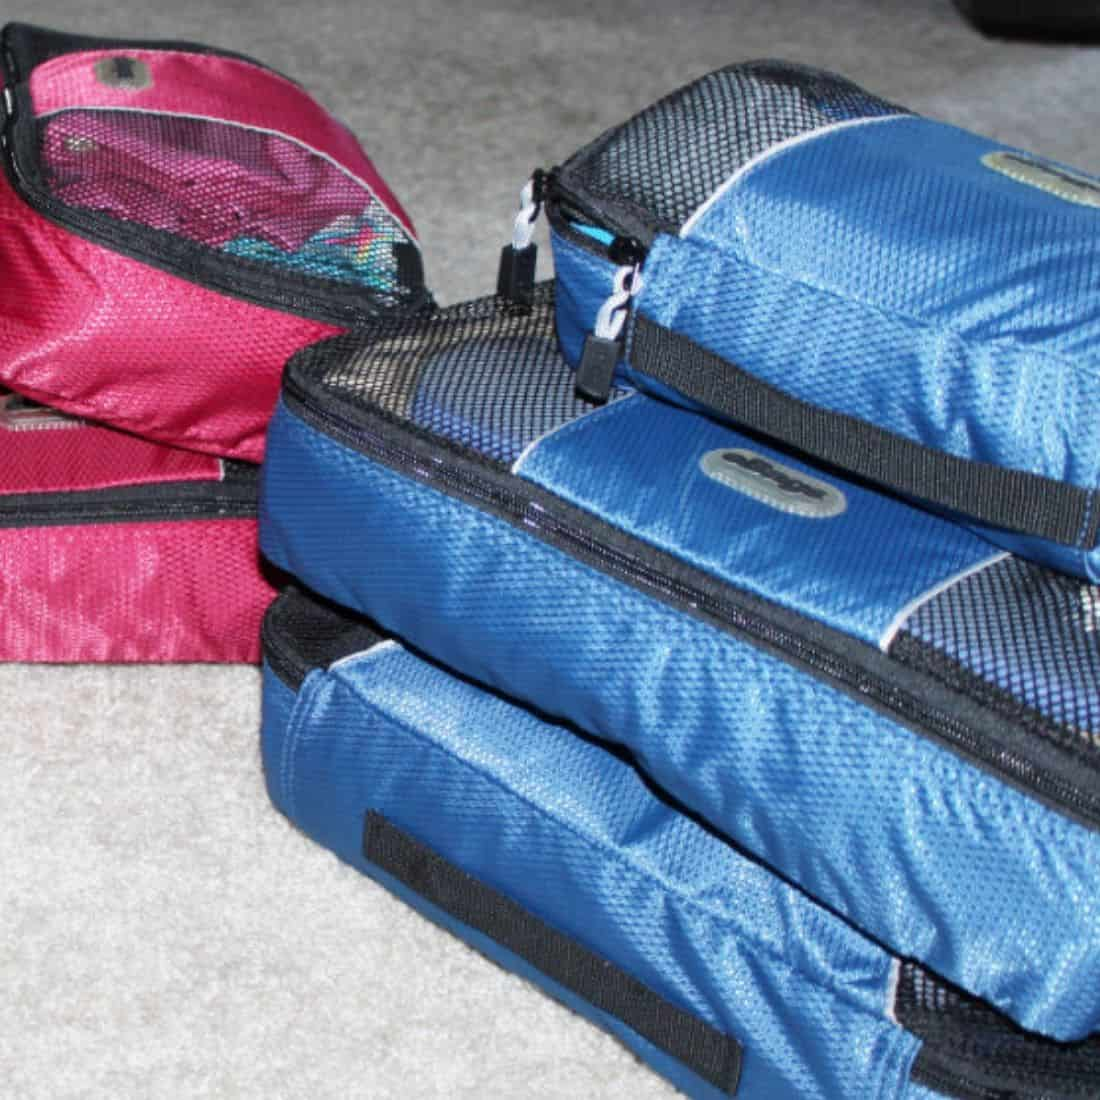 How to use packing cubes efficiently